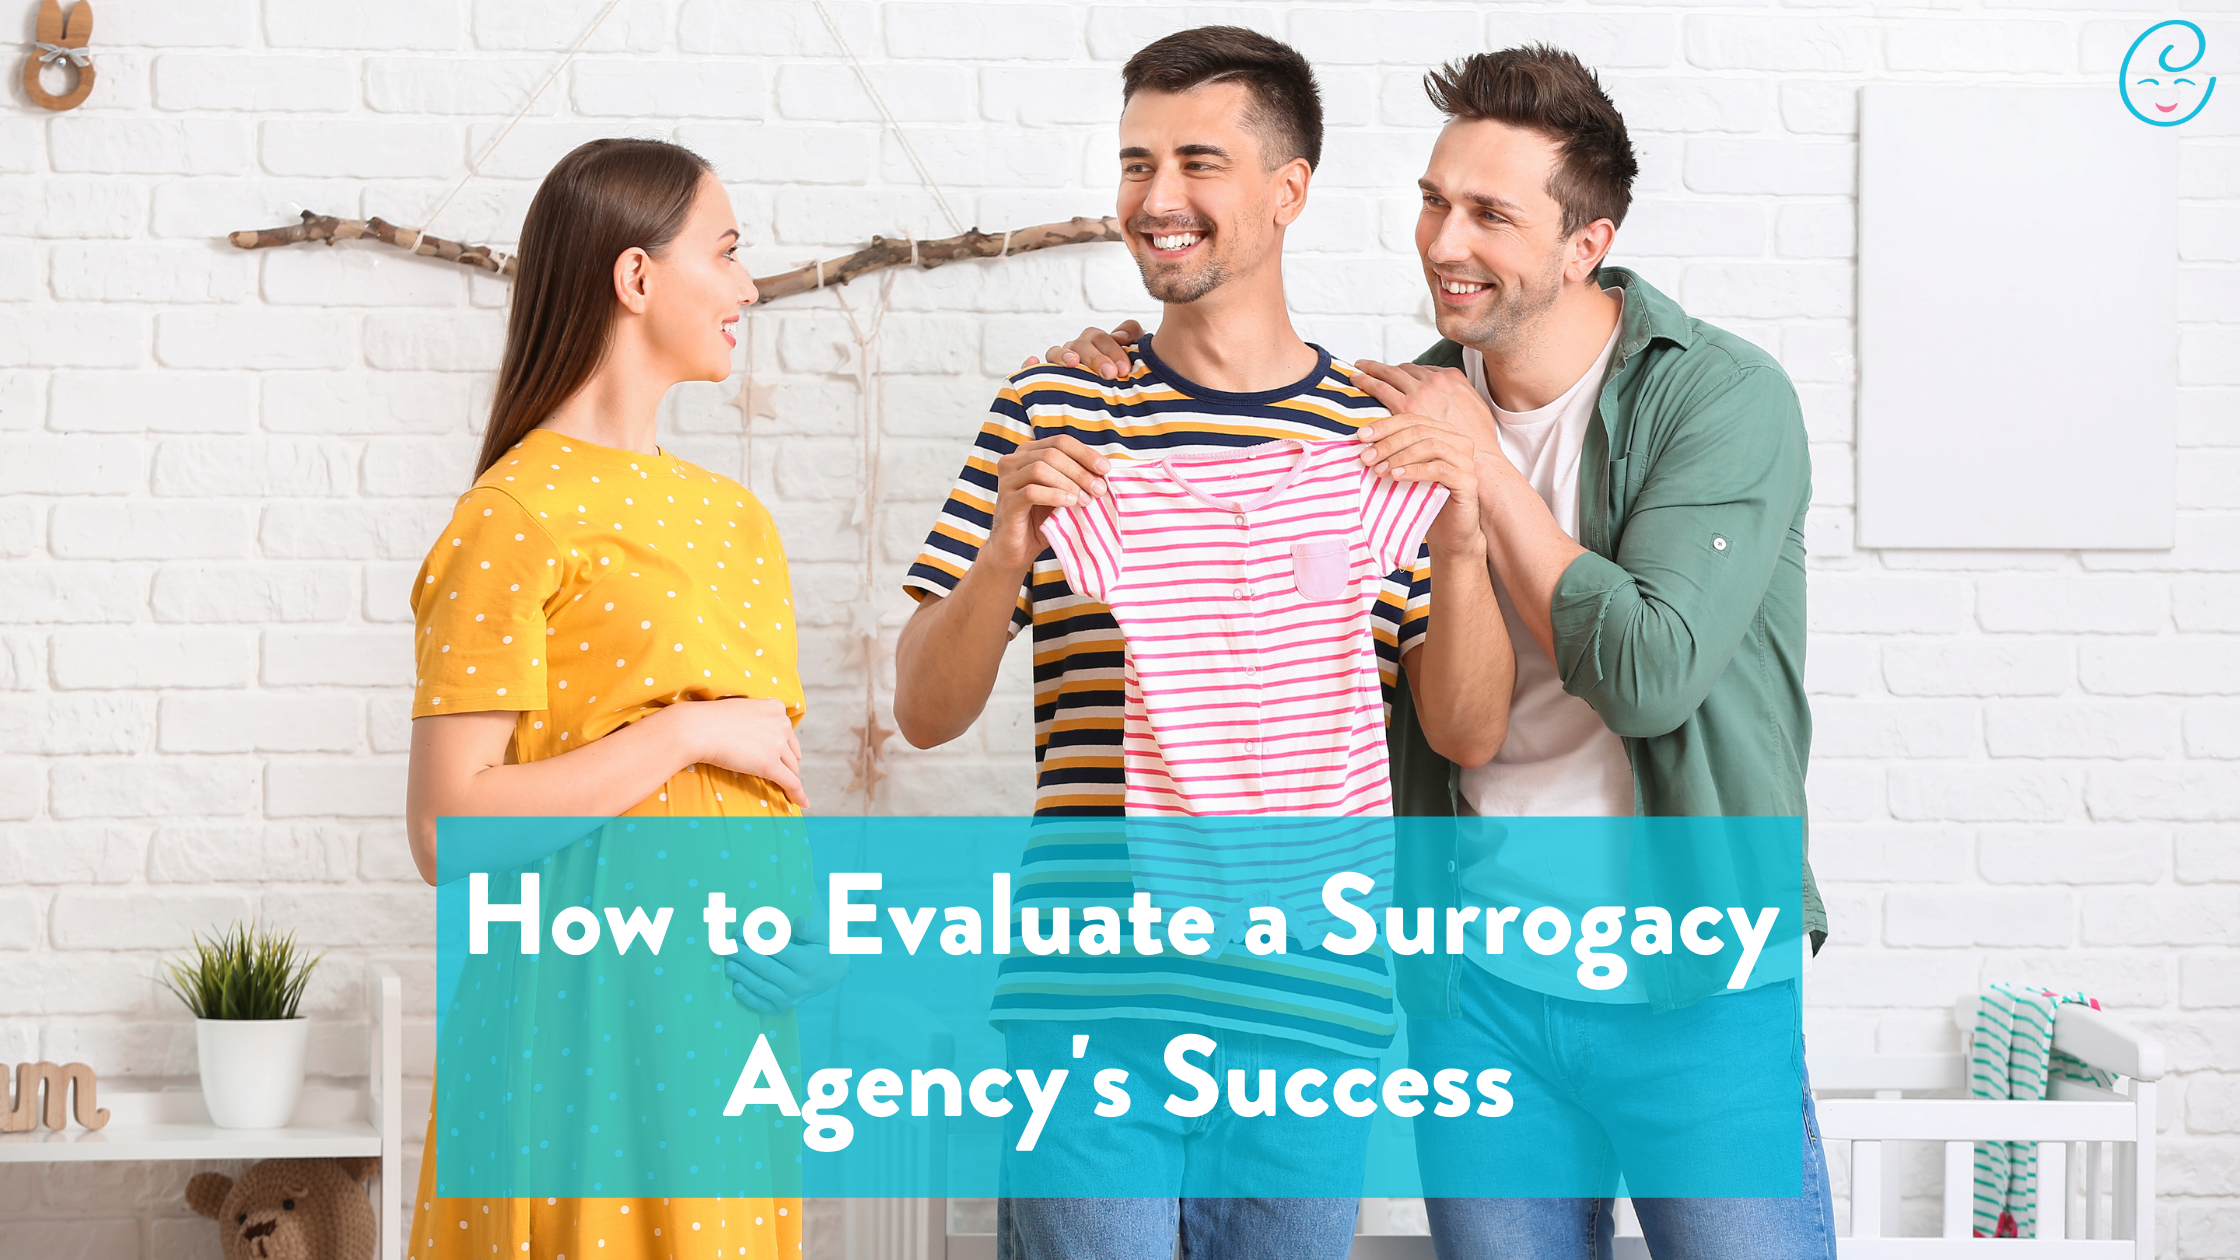 Surrogacy agency's success